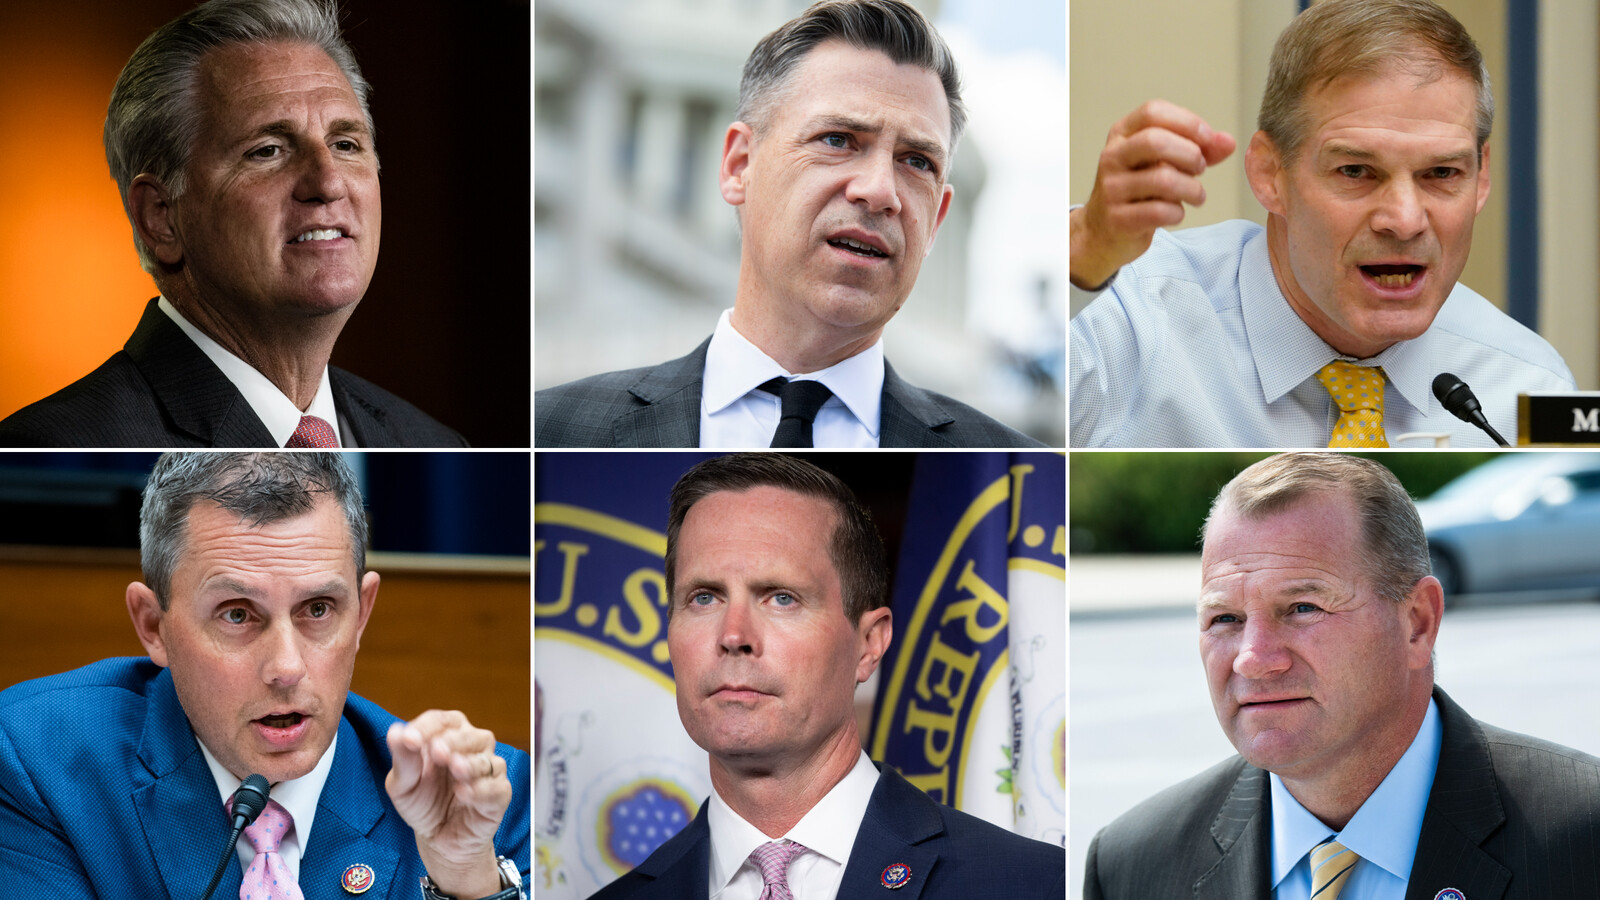 Jim Jordan among 5 House Republicans selected by McCarthy for January 6 select committee